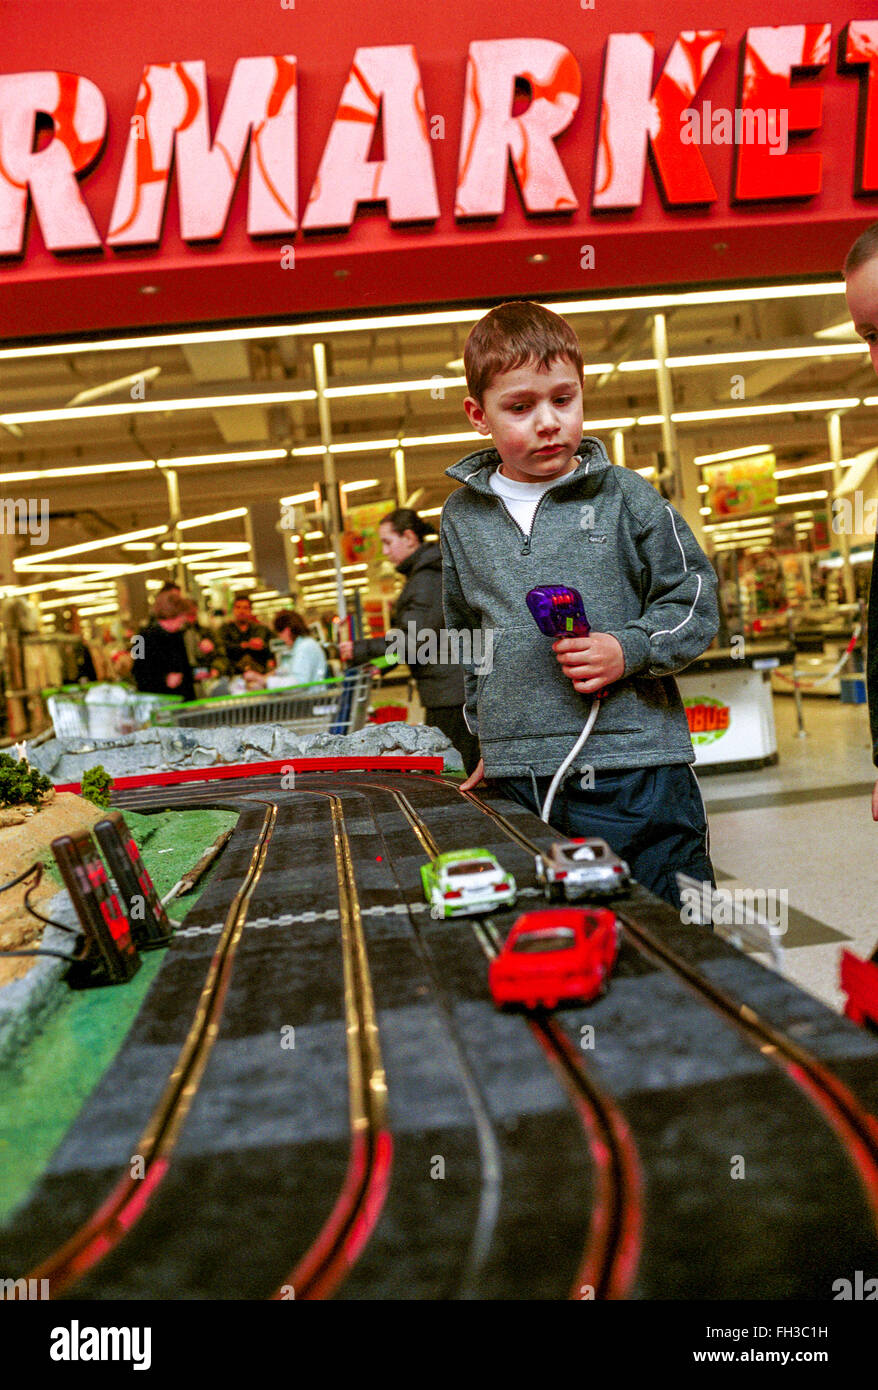 Slot racing car track and playing child, shopping center - Stock Image